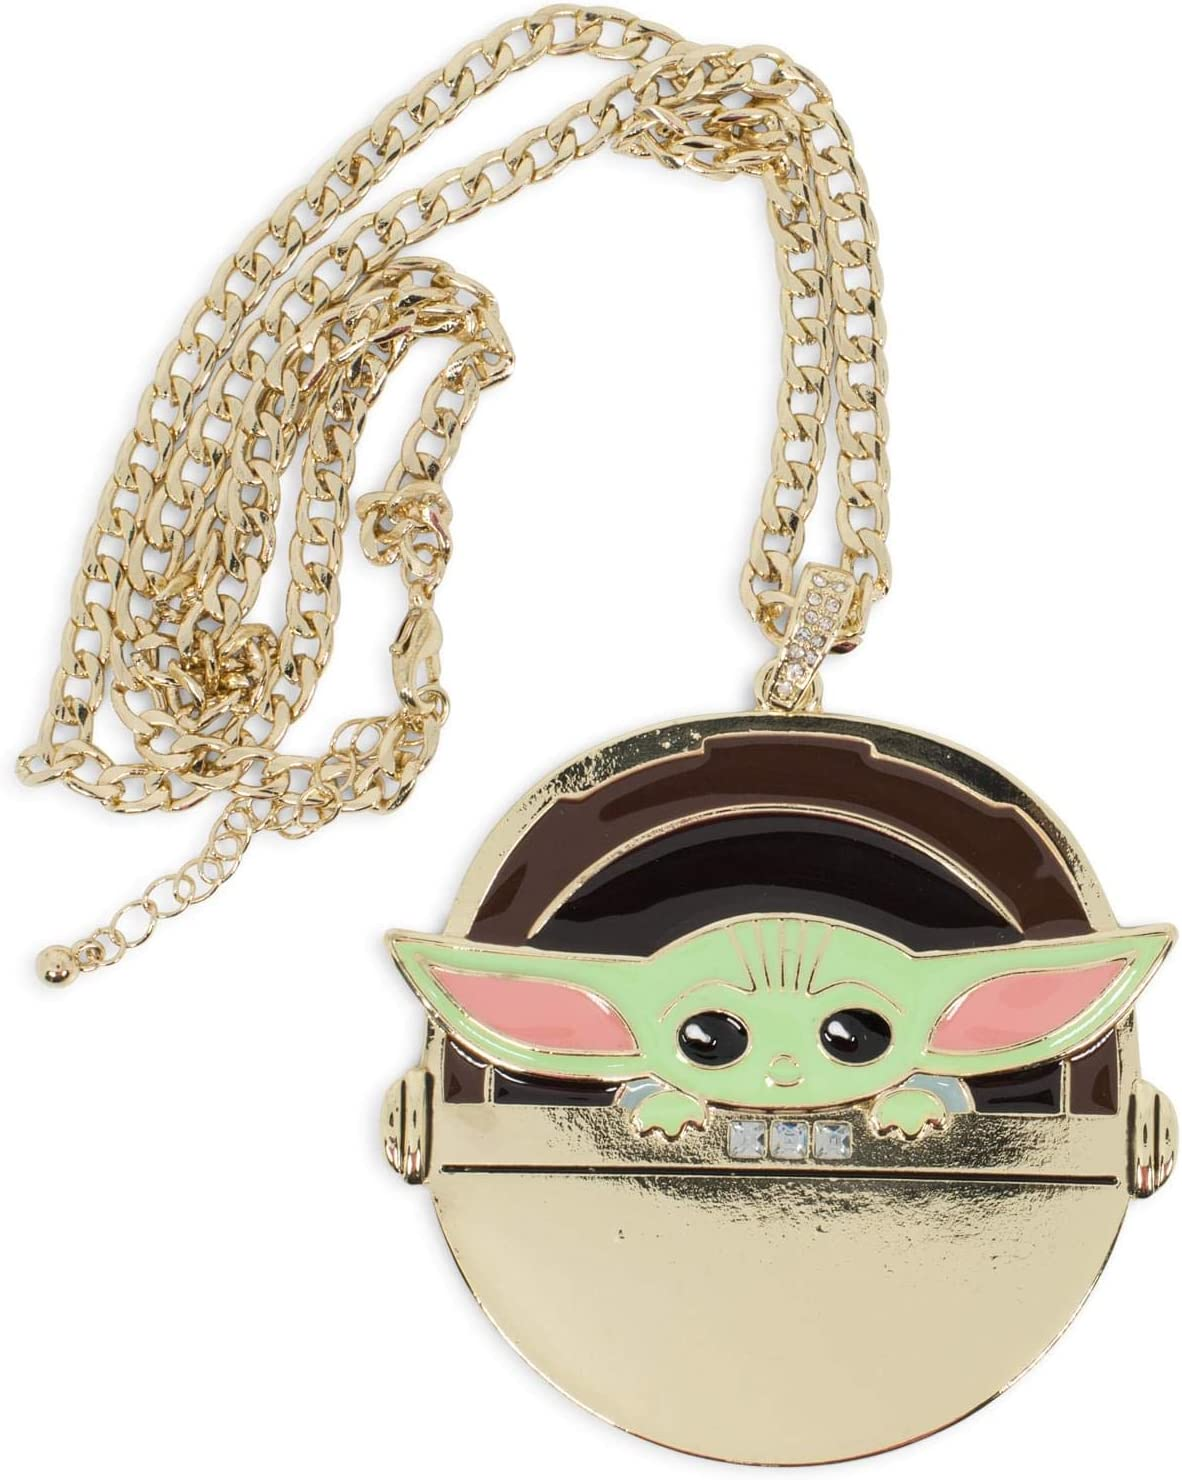 Baby Yoda Jewerly Baby Yoda Bracelet Just a Girl Who Loves Baby Yoda Bracelet Yoda Gifts for Girls